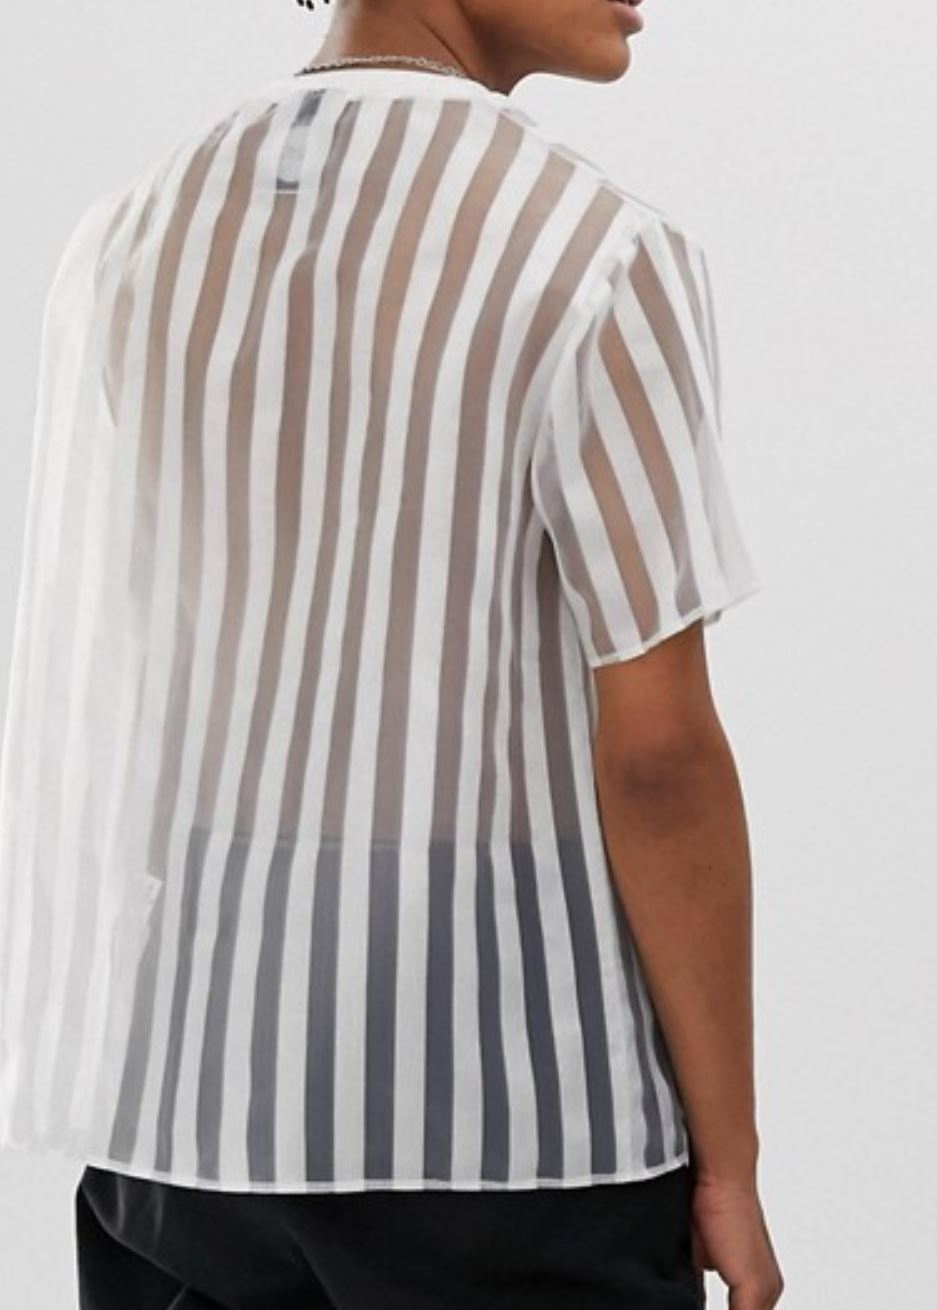 See-Through, Striped Top from asos.com